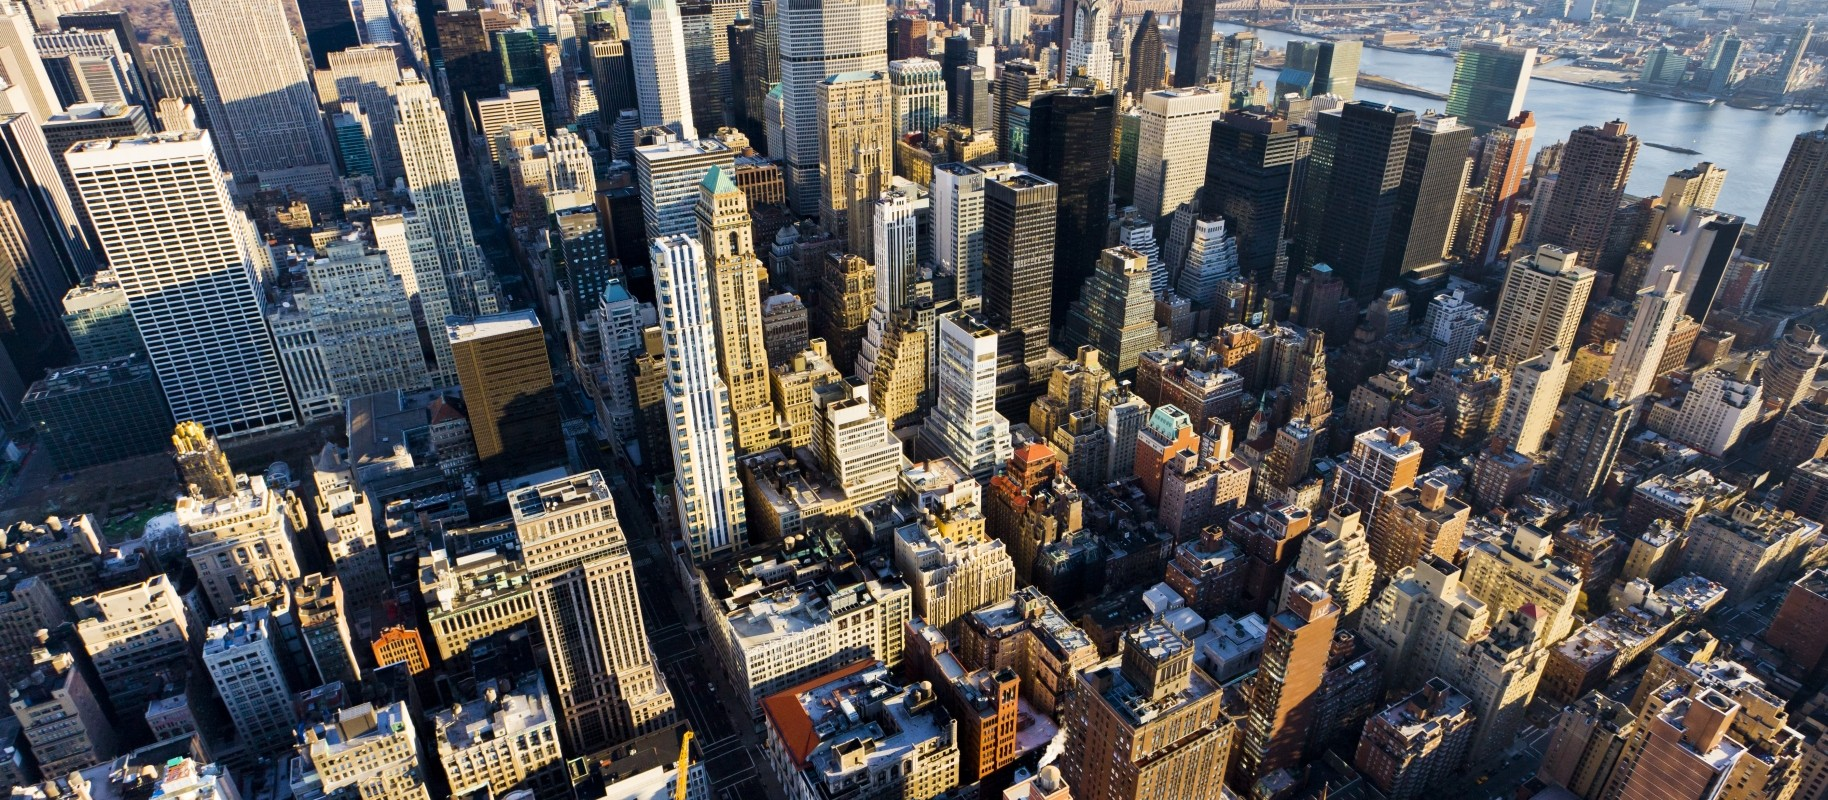 stockfresh_1738847_view-of-manhattan-from-the-empire-state-building-new-york-city_sizeM